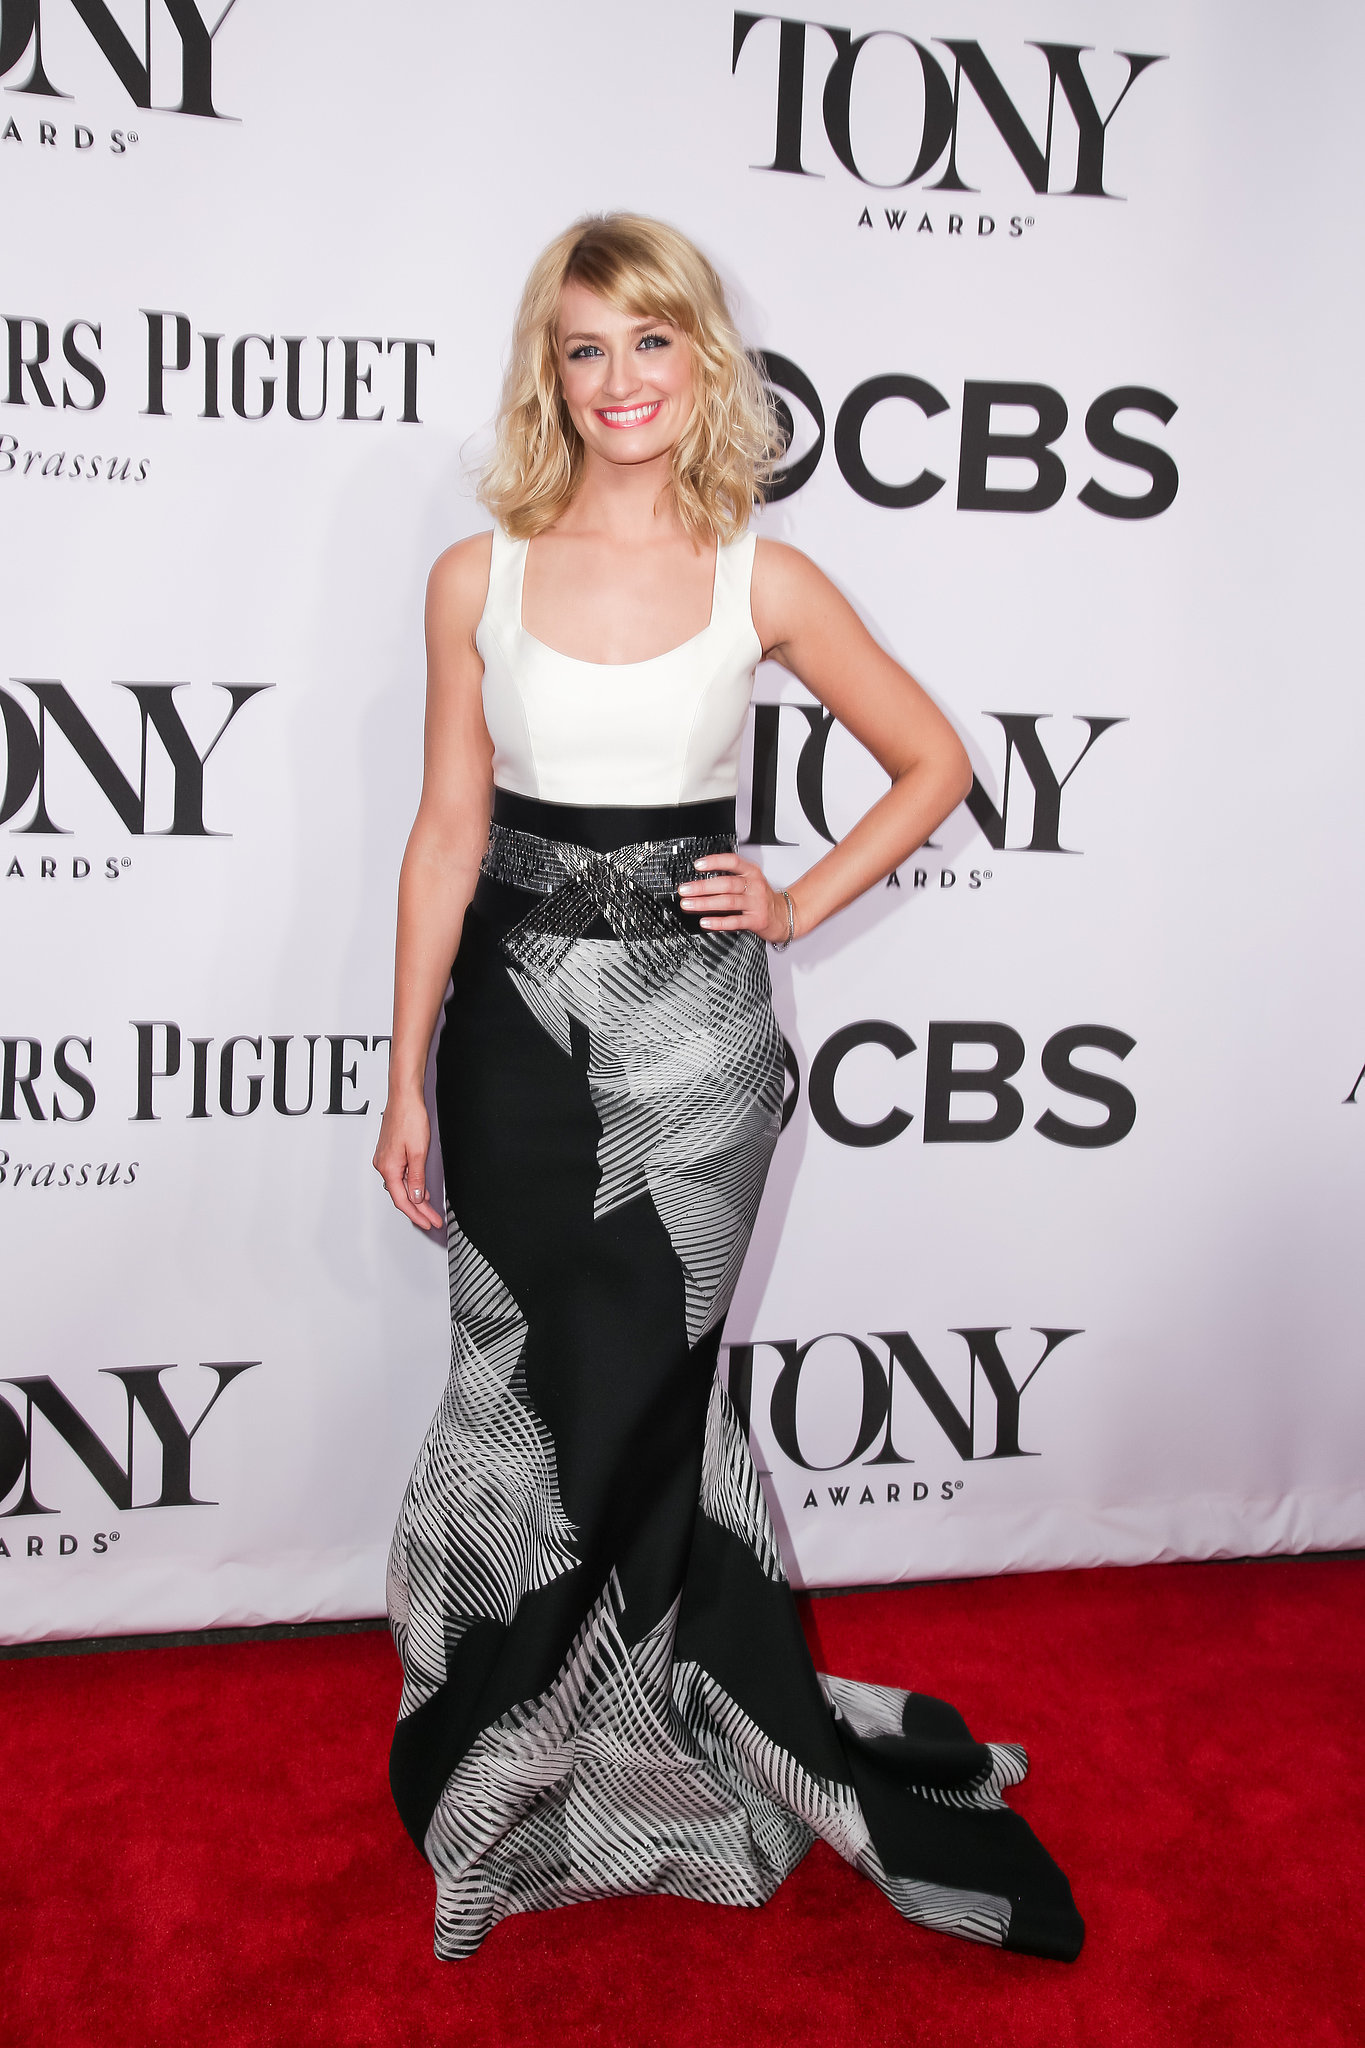 Beth Behrs | Kerry Washington Was in Good Company For Her